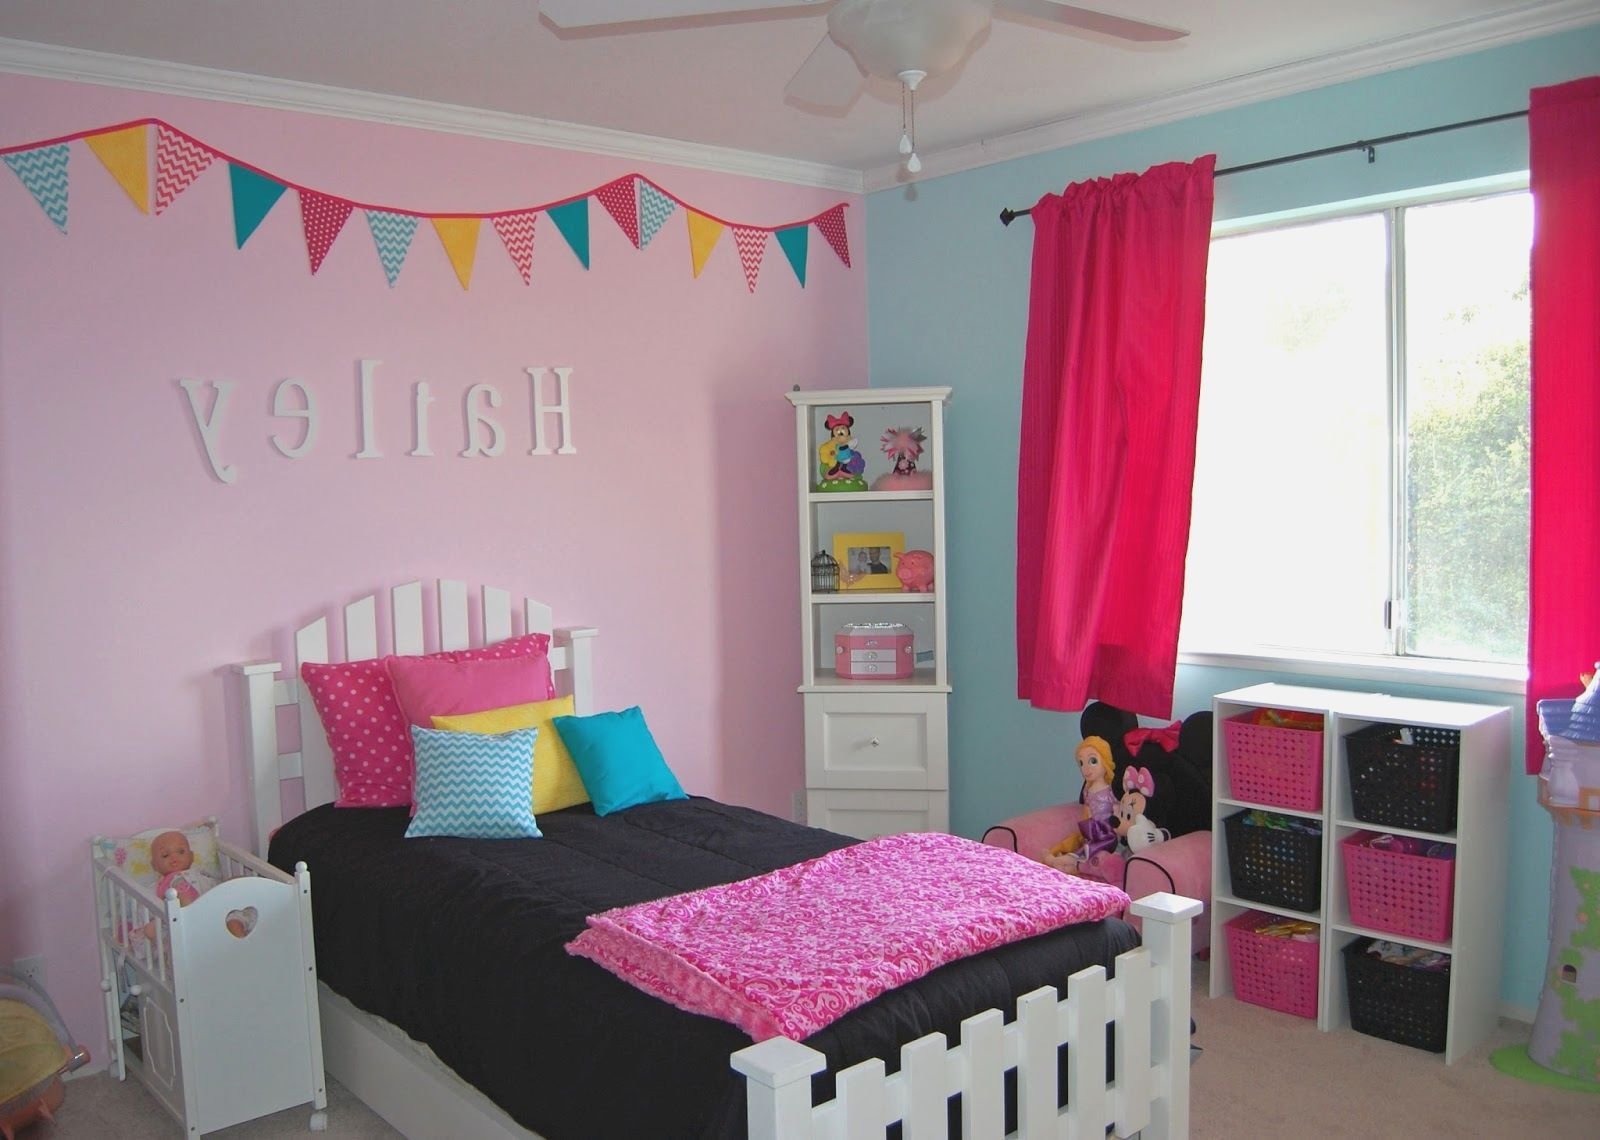 Bedroom ideas for 10 yr old girl more picture bedroom for 3 year old bedroom ideas